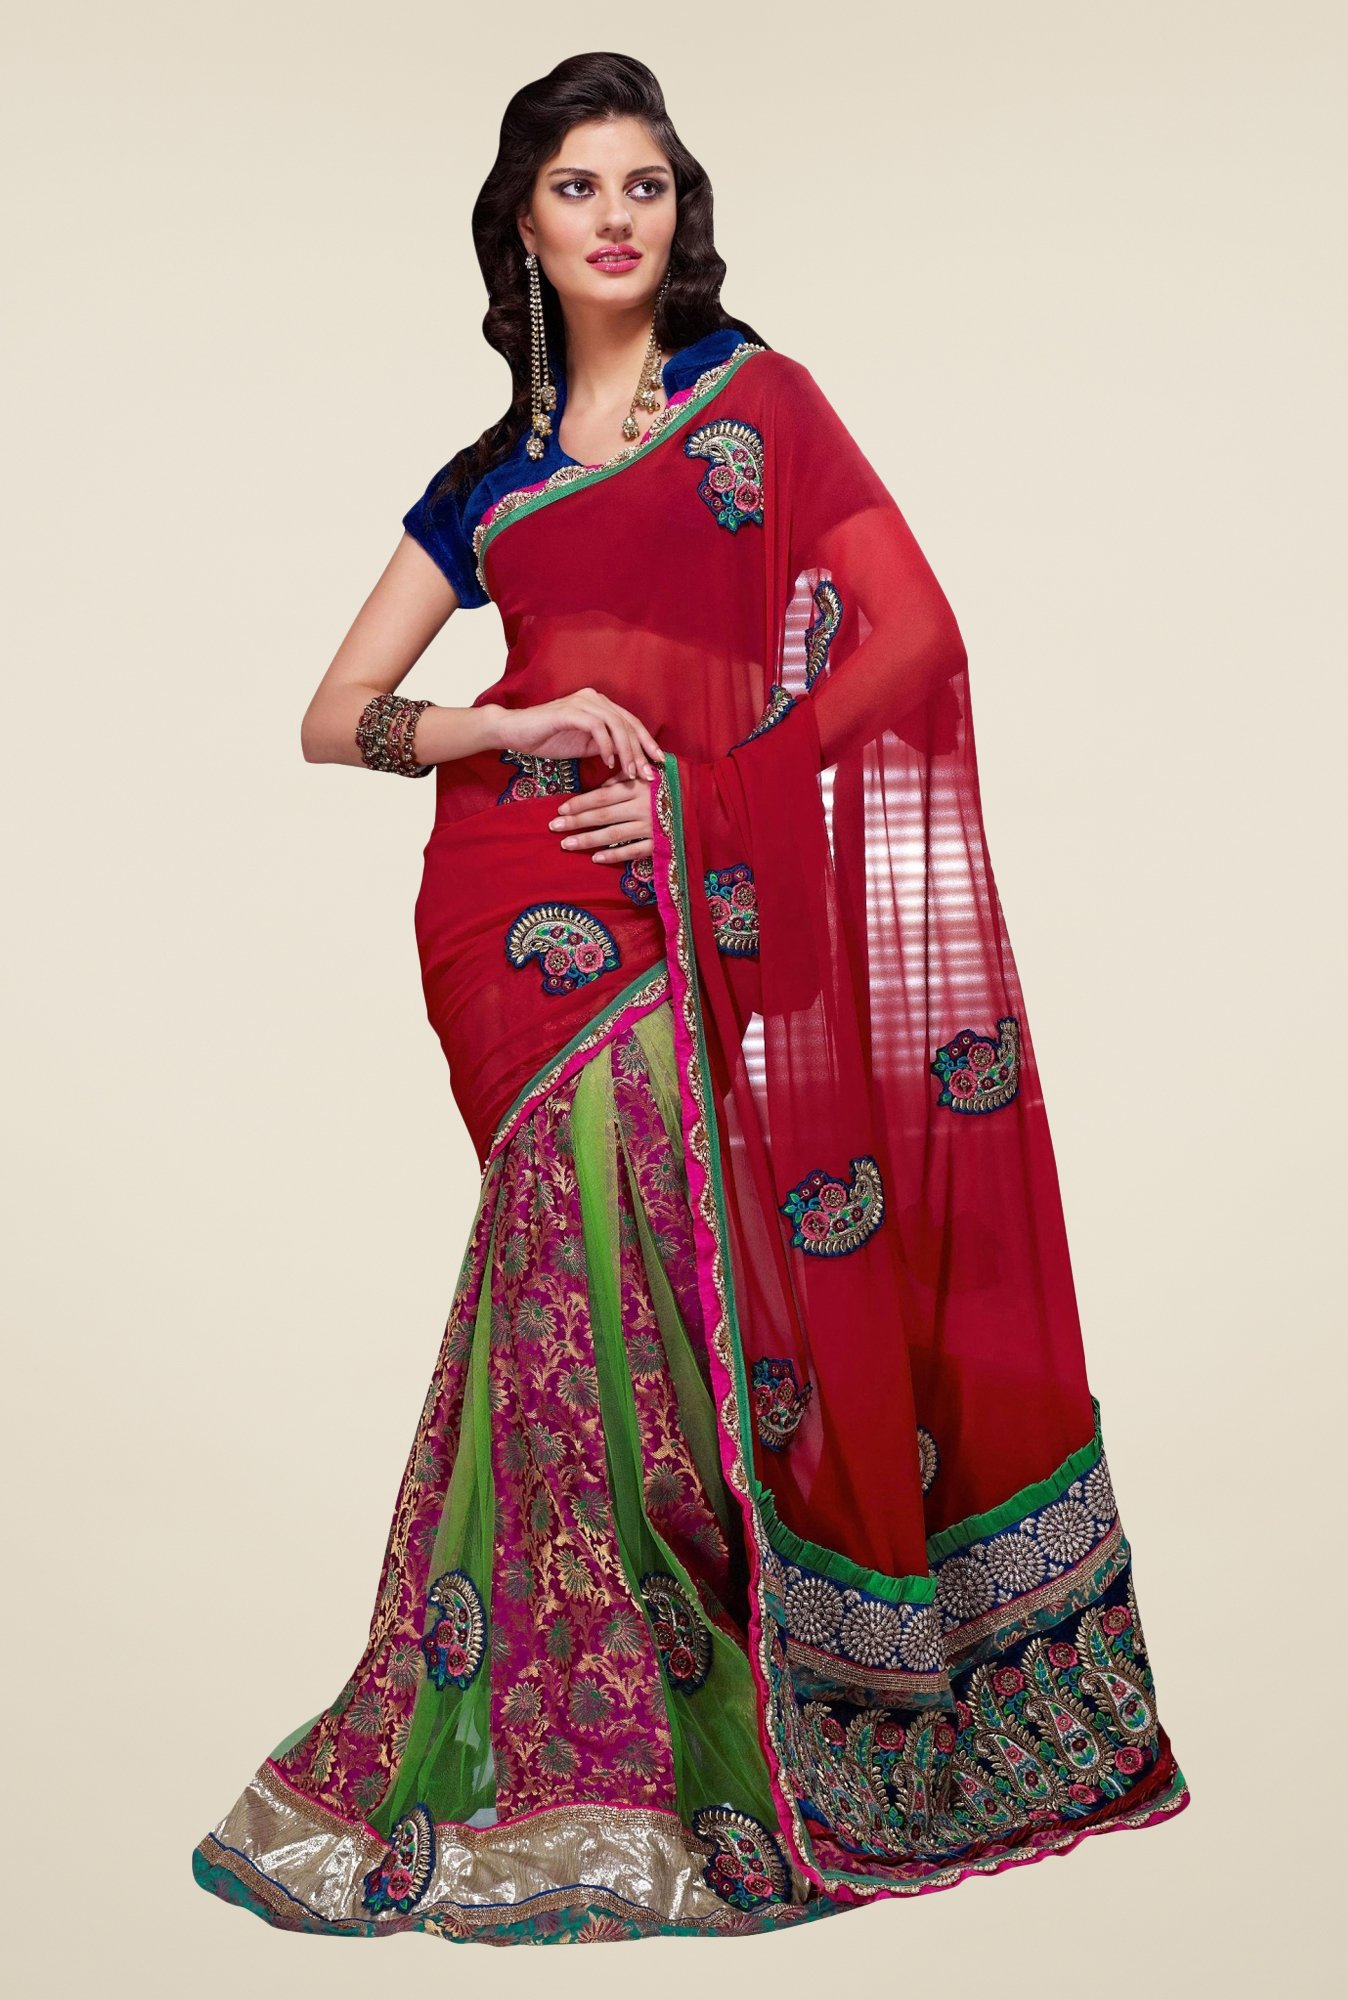 Triveni Spectacular Multicolor Georgette Net Lehenga Saree